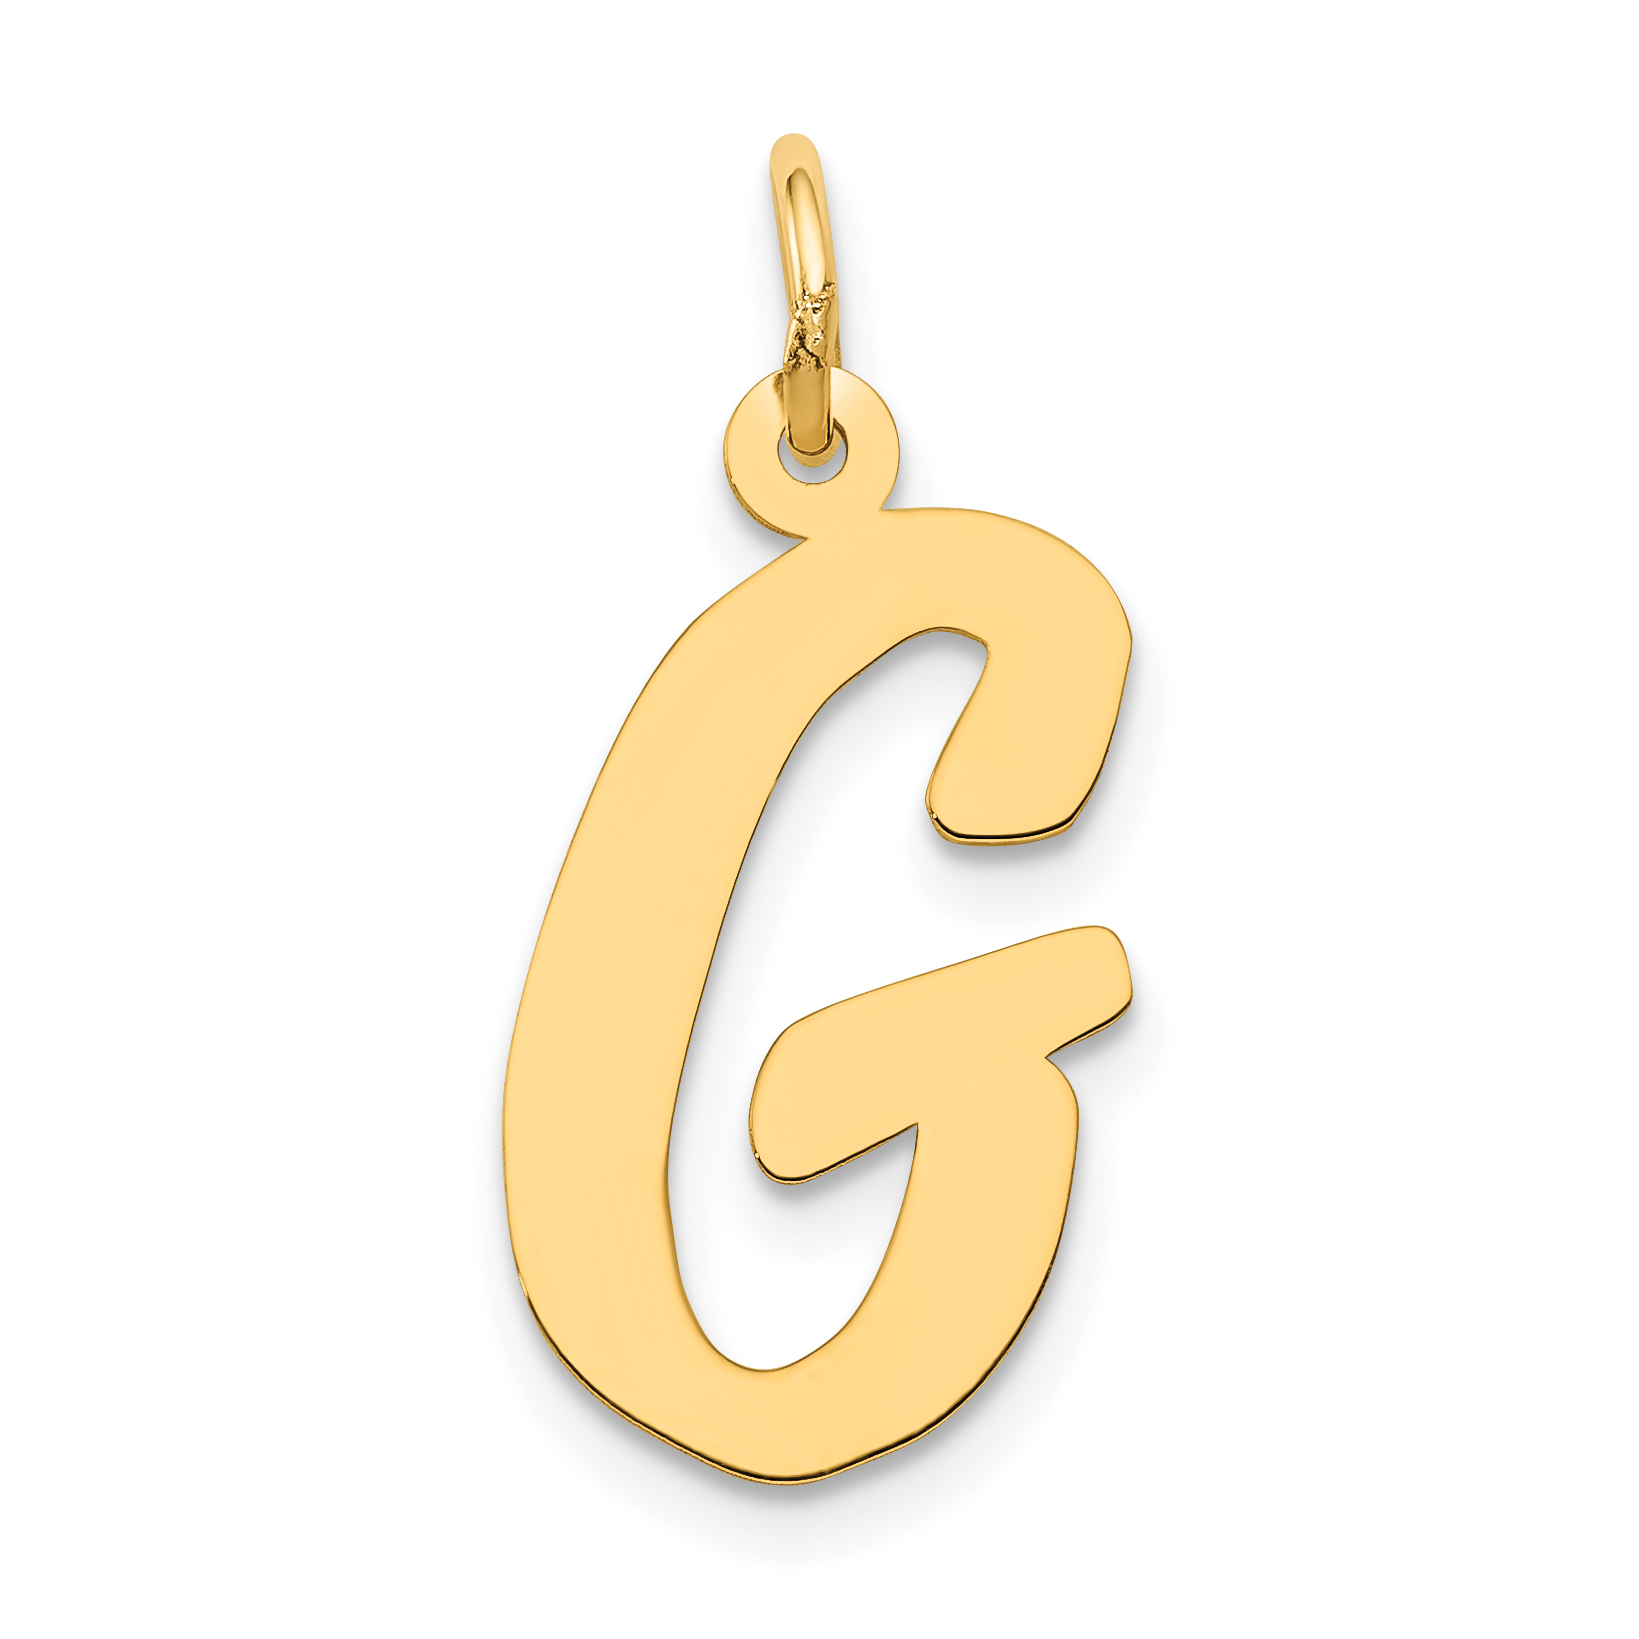 14k Yellow Gold Initial Monogram Name Letter K Pendant Charm Necklace Fine Jewelry Gifts For Women For Her